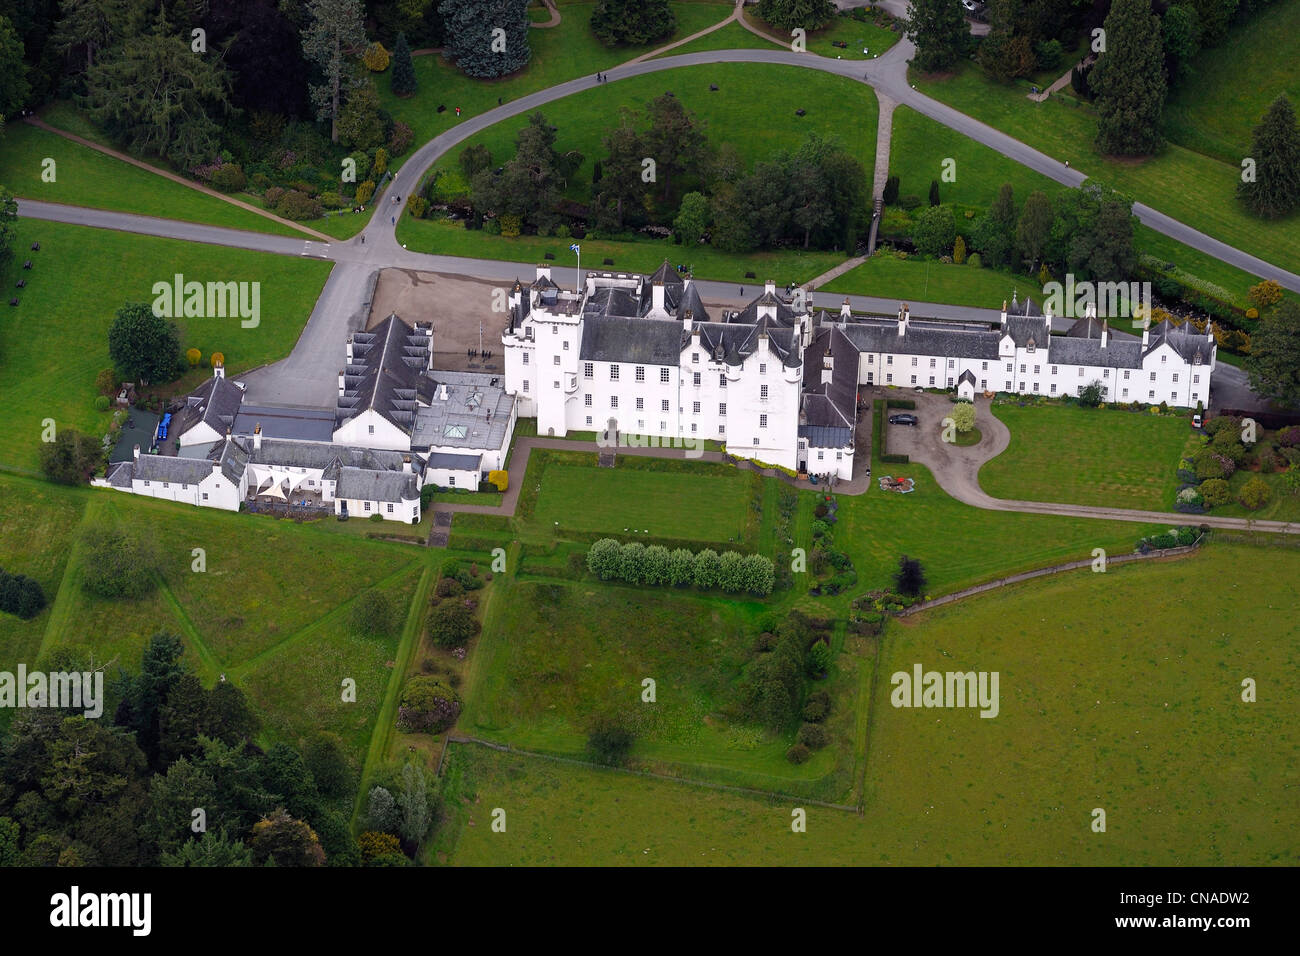 United Kingdom, Scotland, Perthshire and Kinross, Blair Castle (aerial view) - Stock Image